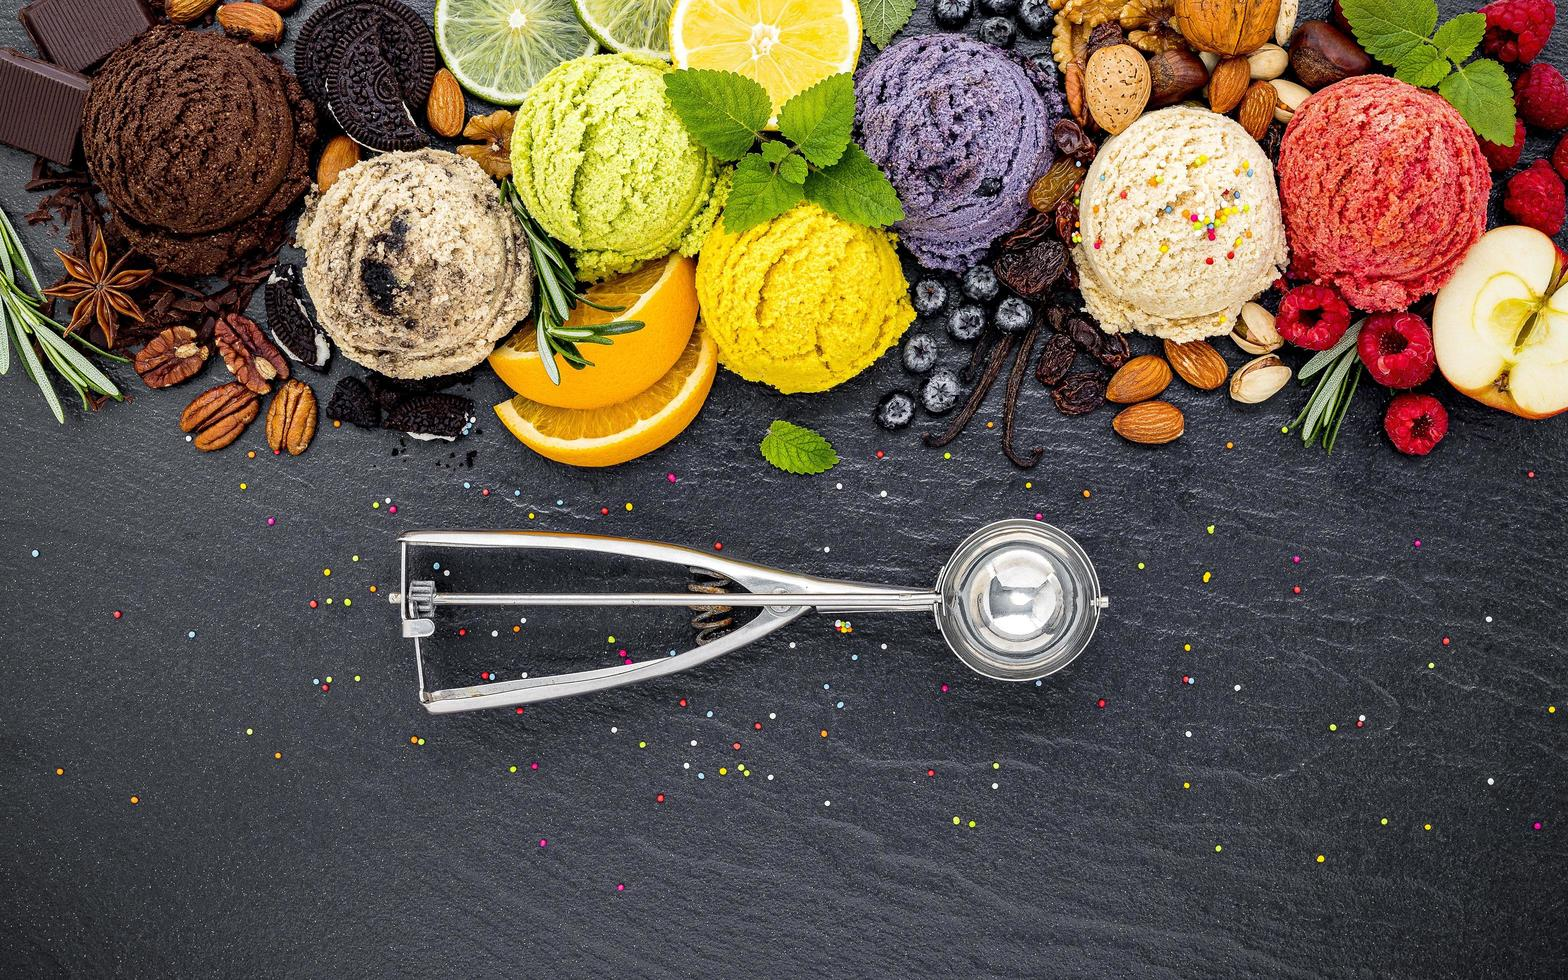 Colorful scoops of ice cream with fruit and an ice cream scoop photo